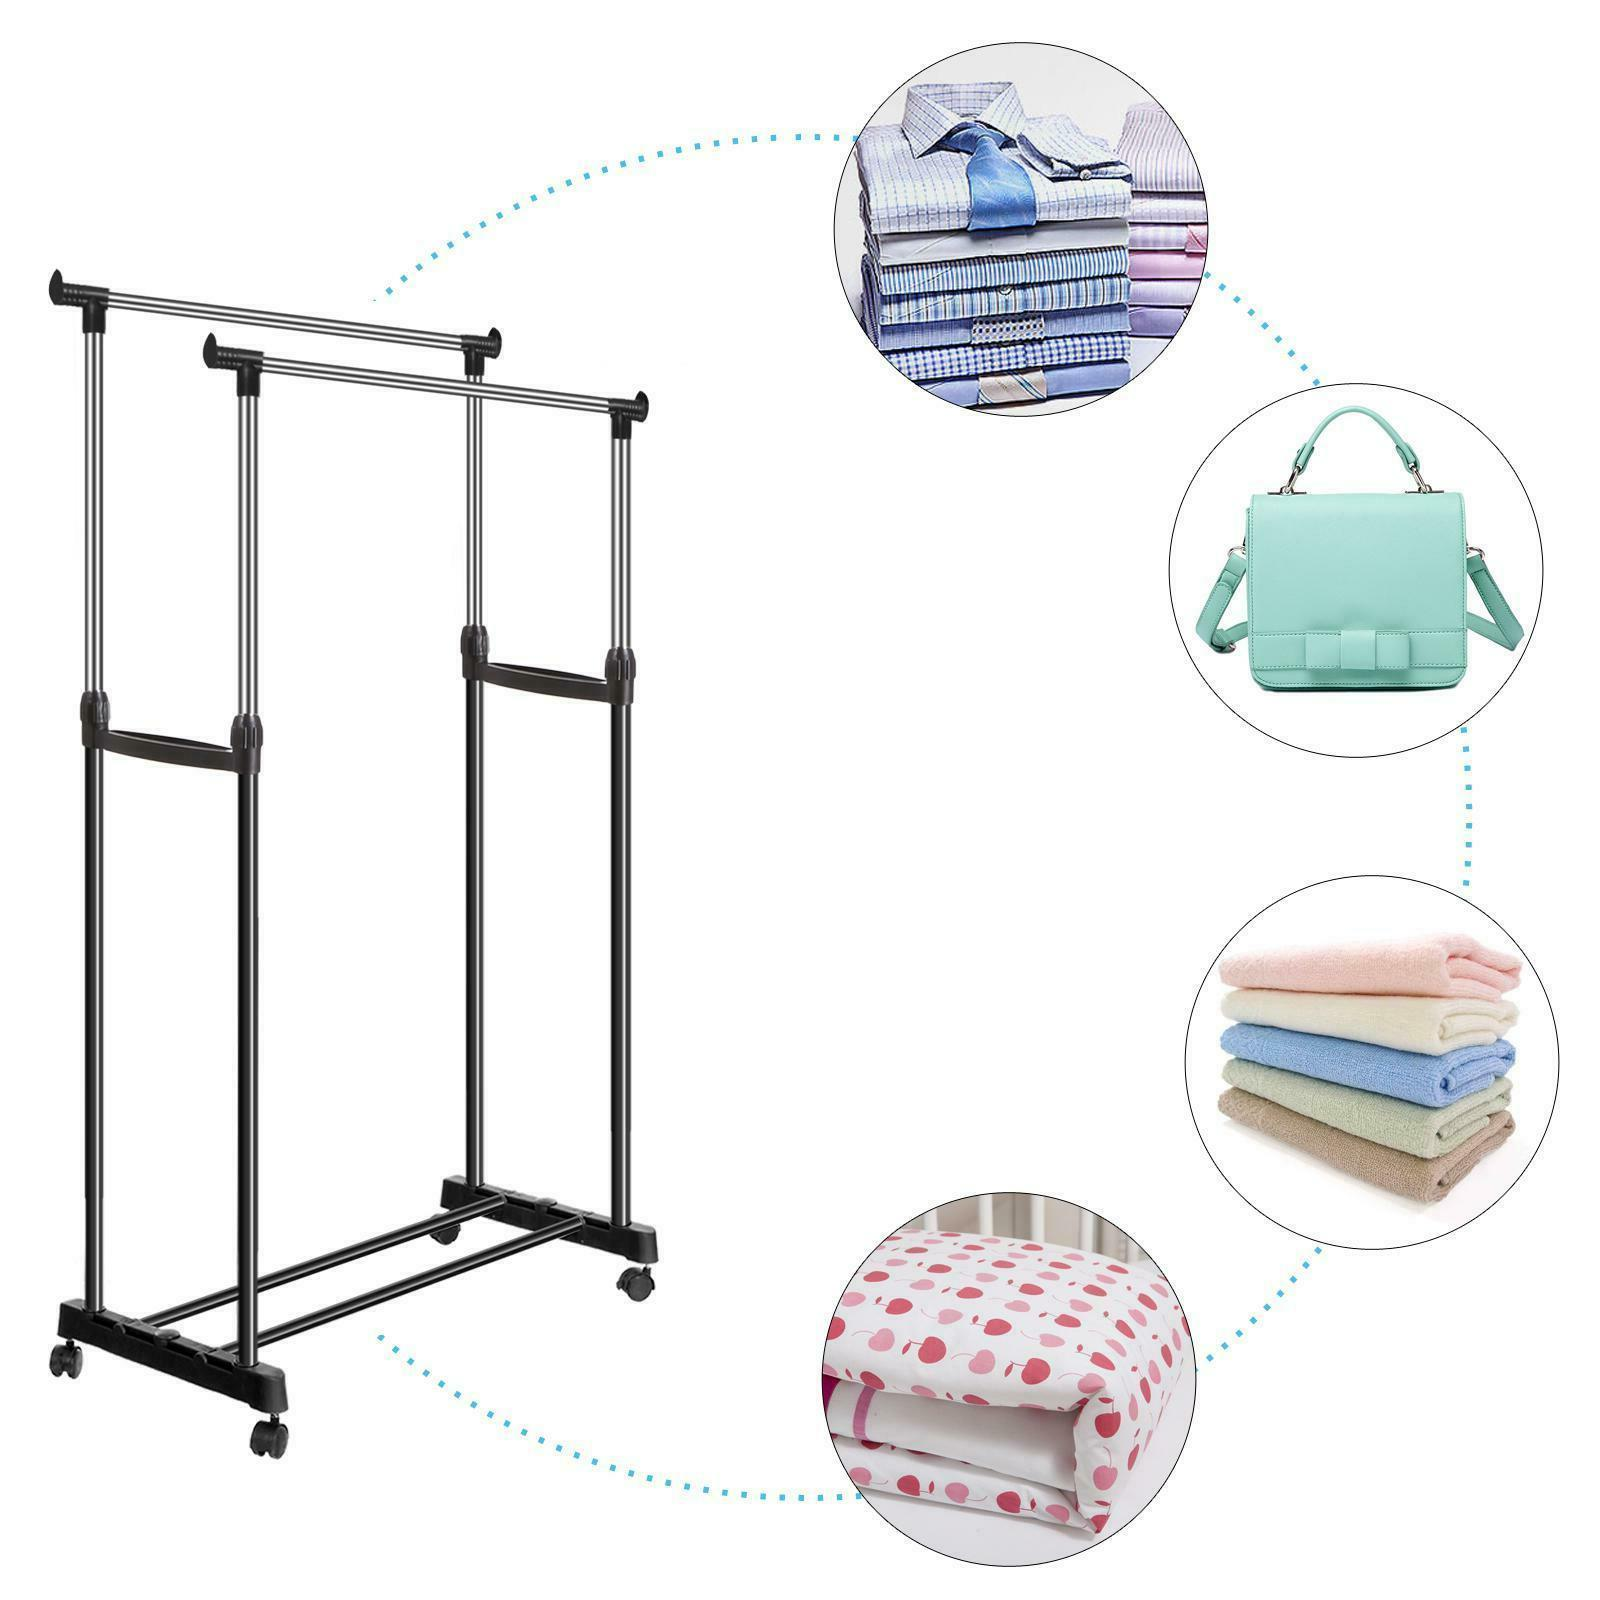 Portable Drying Rack Adjustable